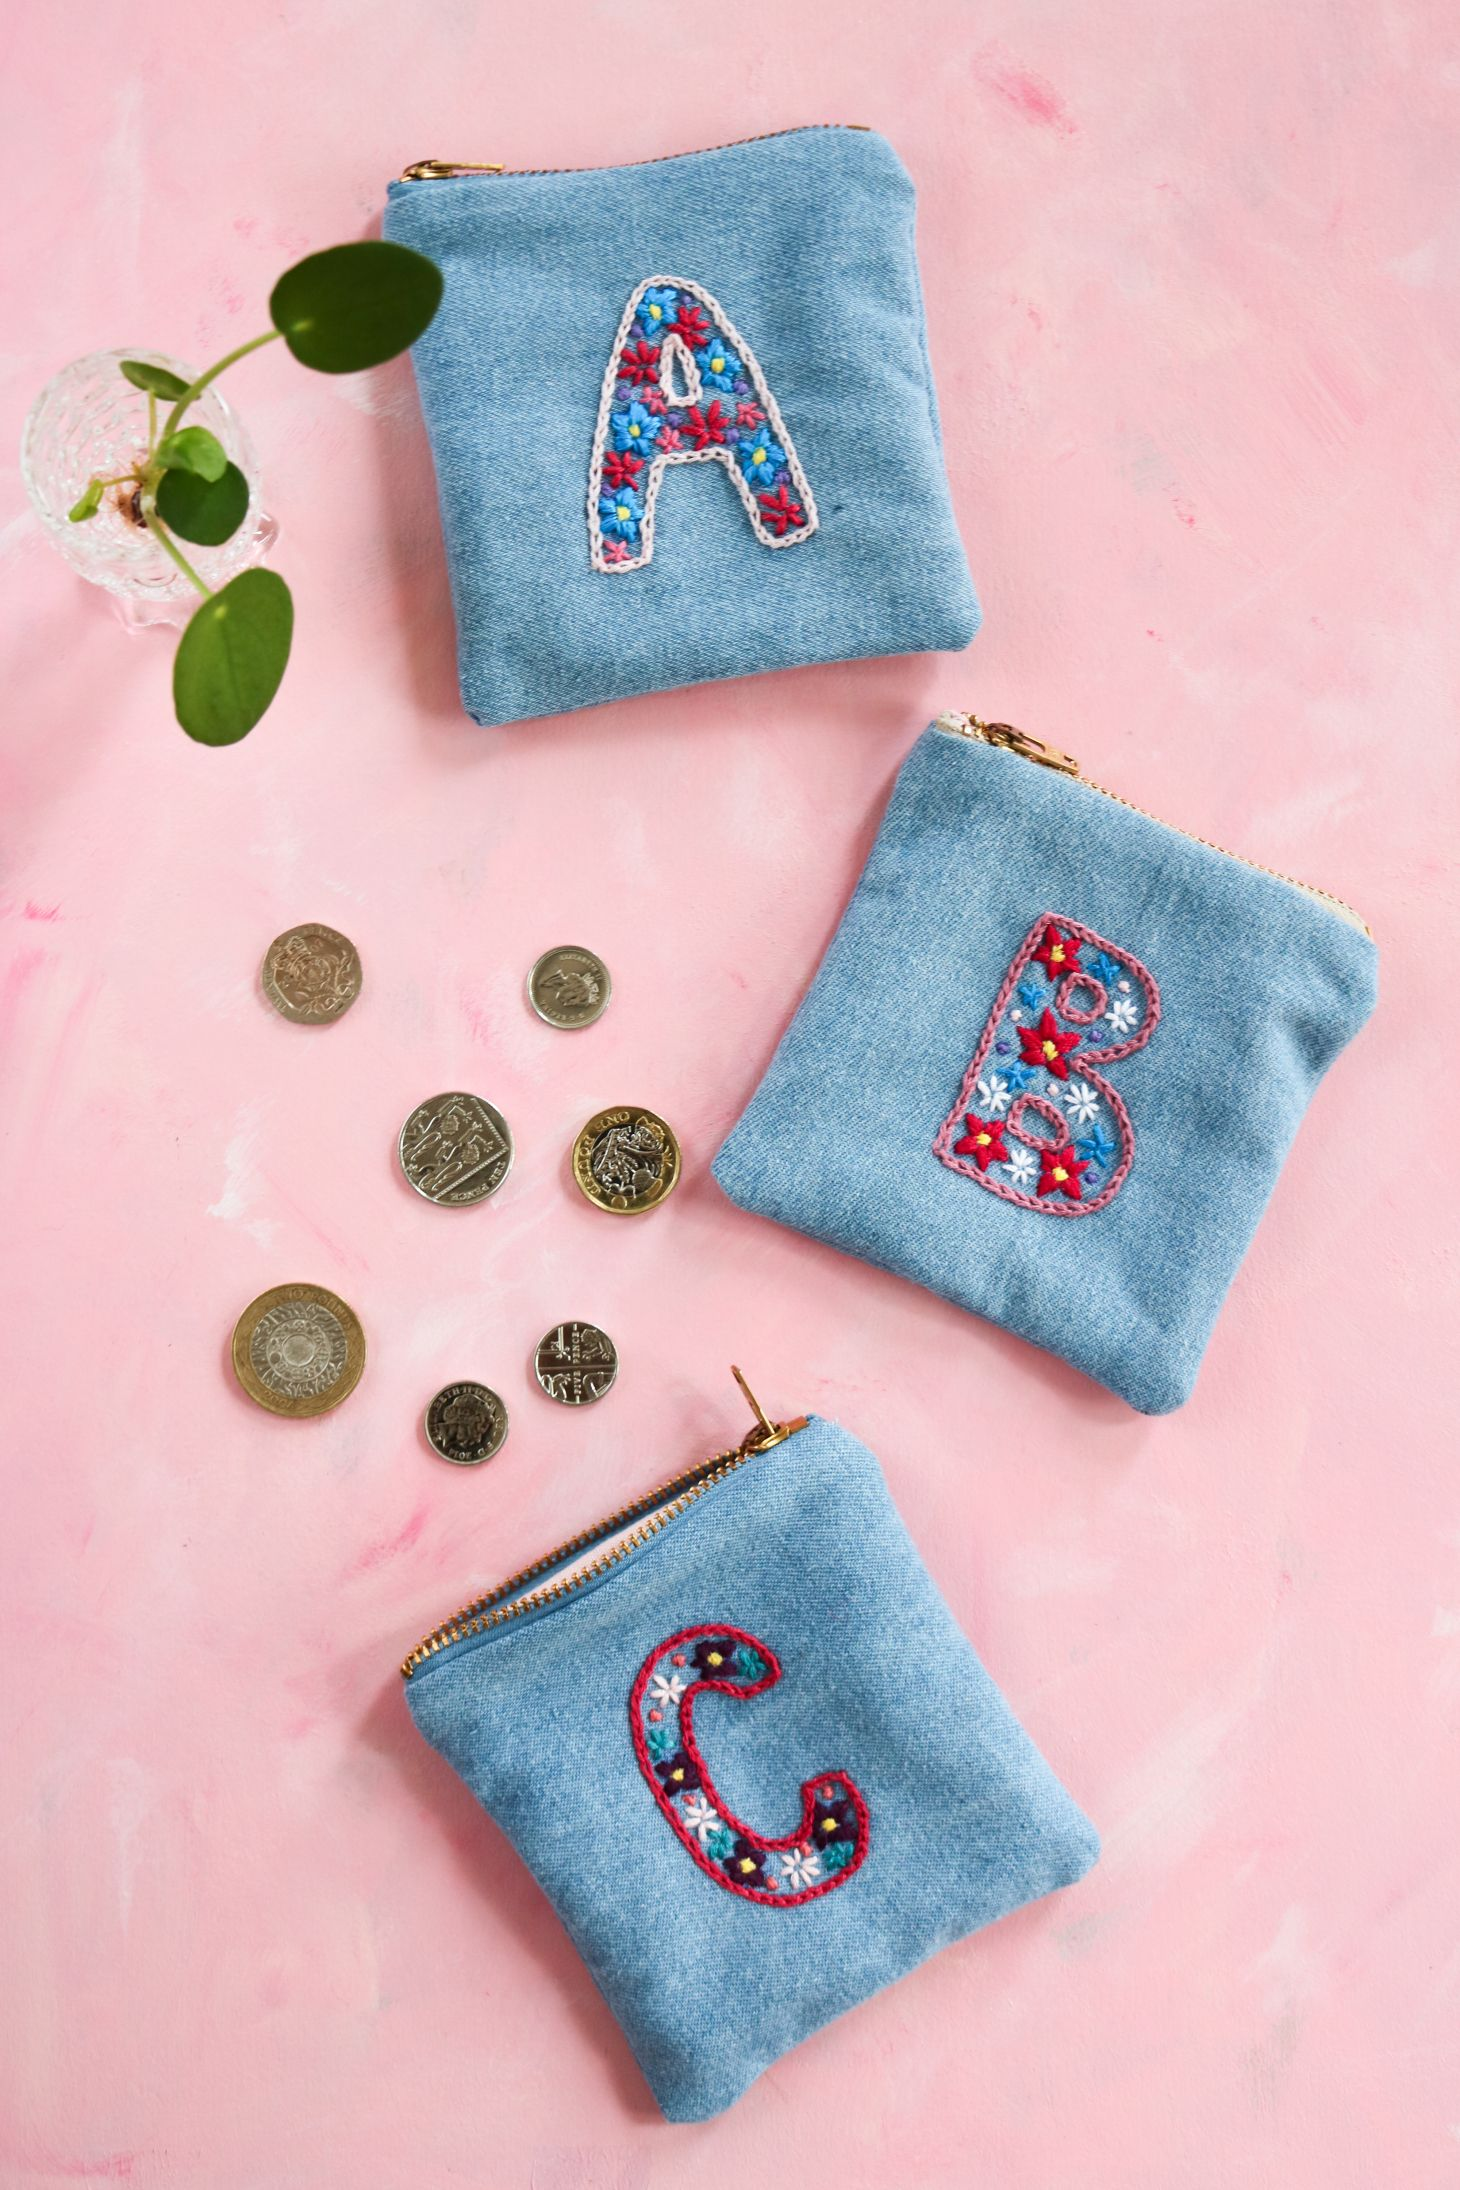 Embrodery And Little Coin Purse To Sew